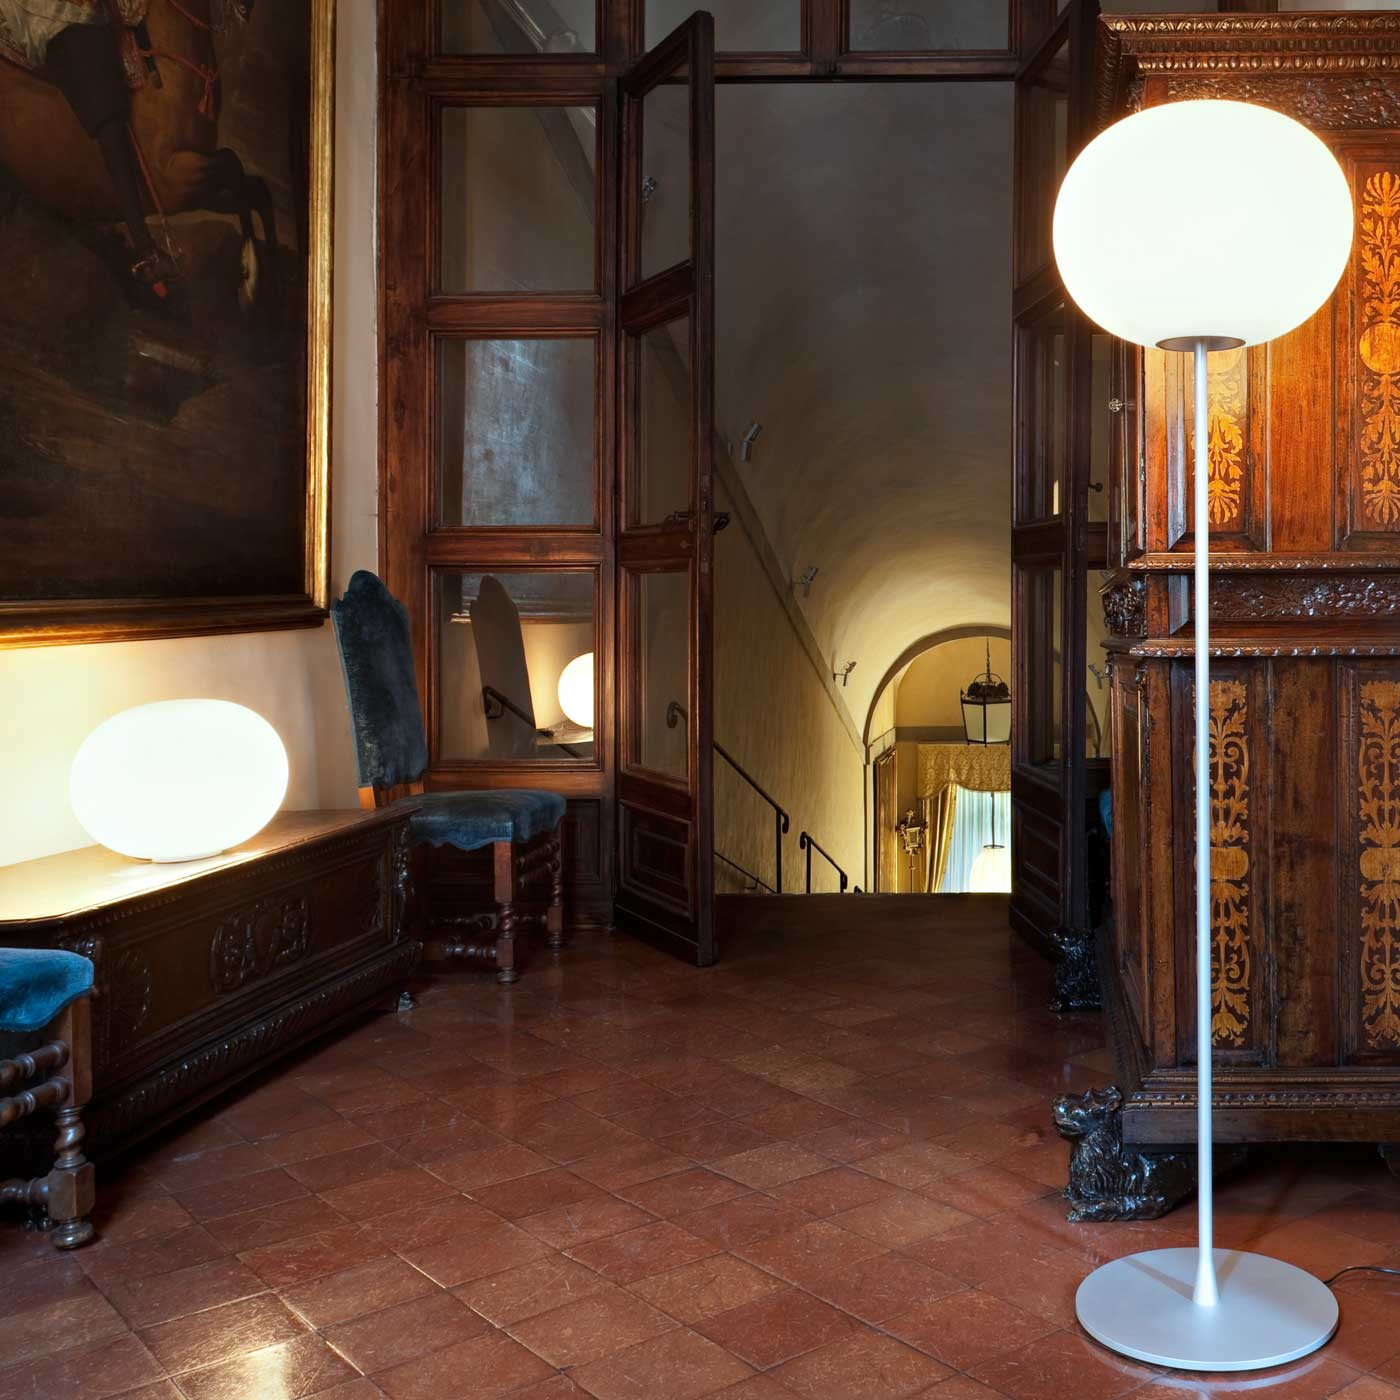 Stylish Lighting for Specific Zones: Floor Lamps Overview. Classic wooden trimmed interior in the 1920s style with parquet and carved table